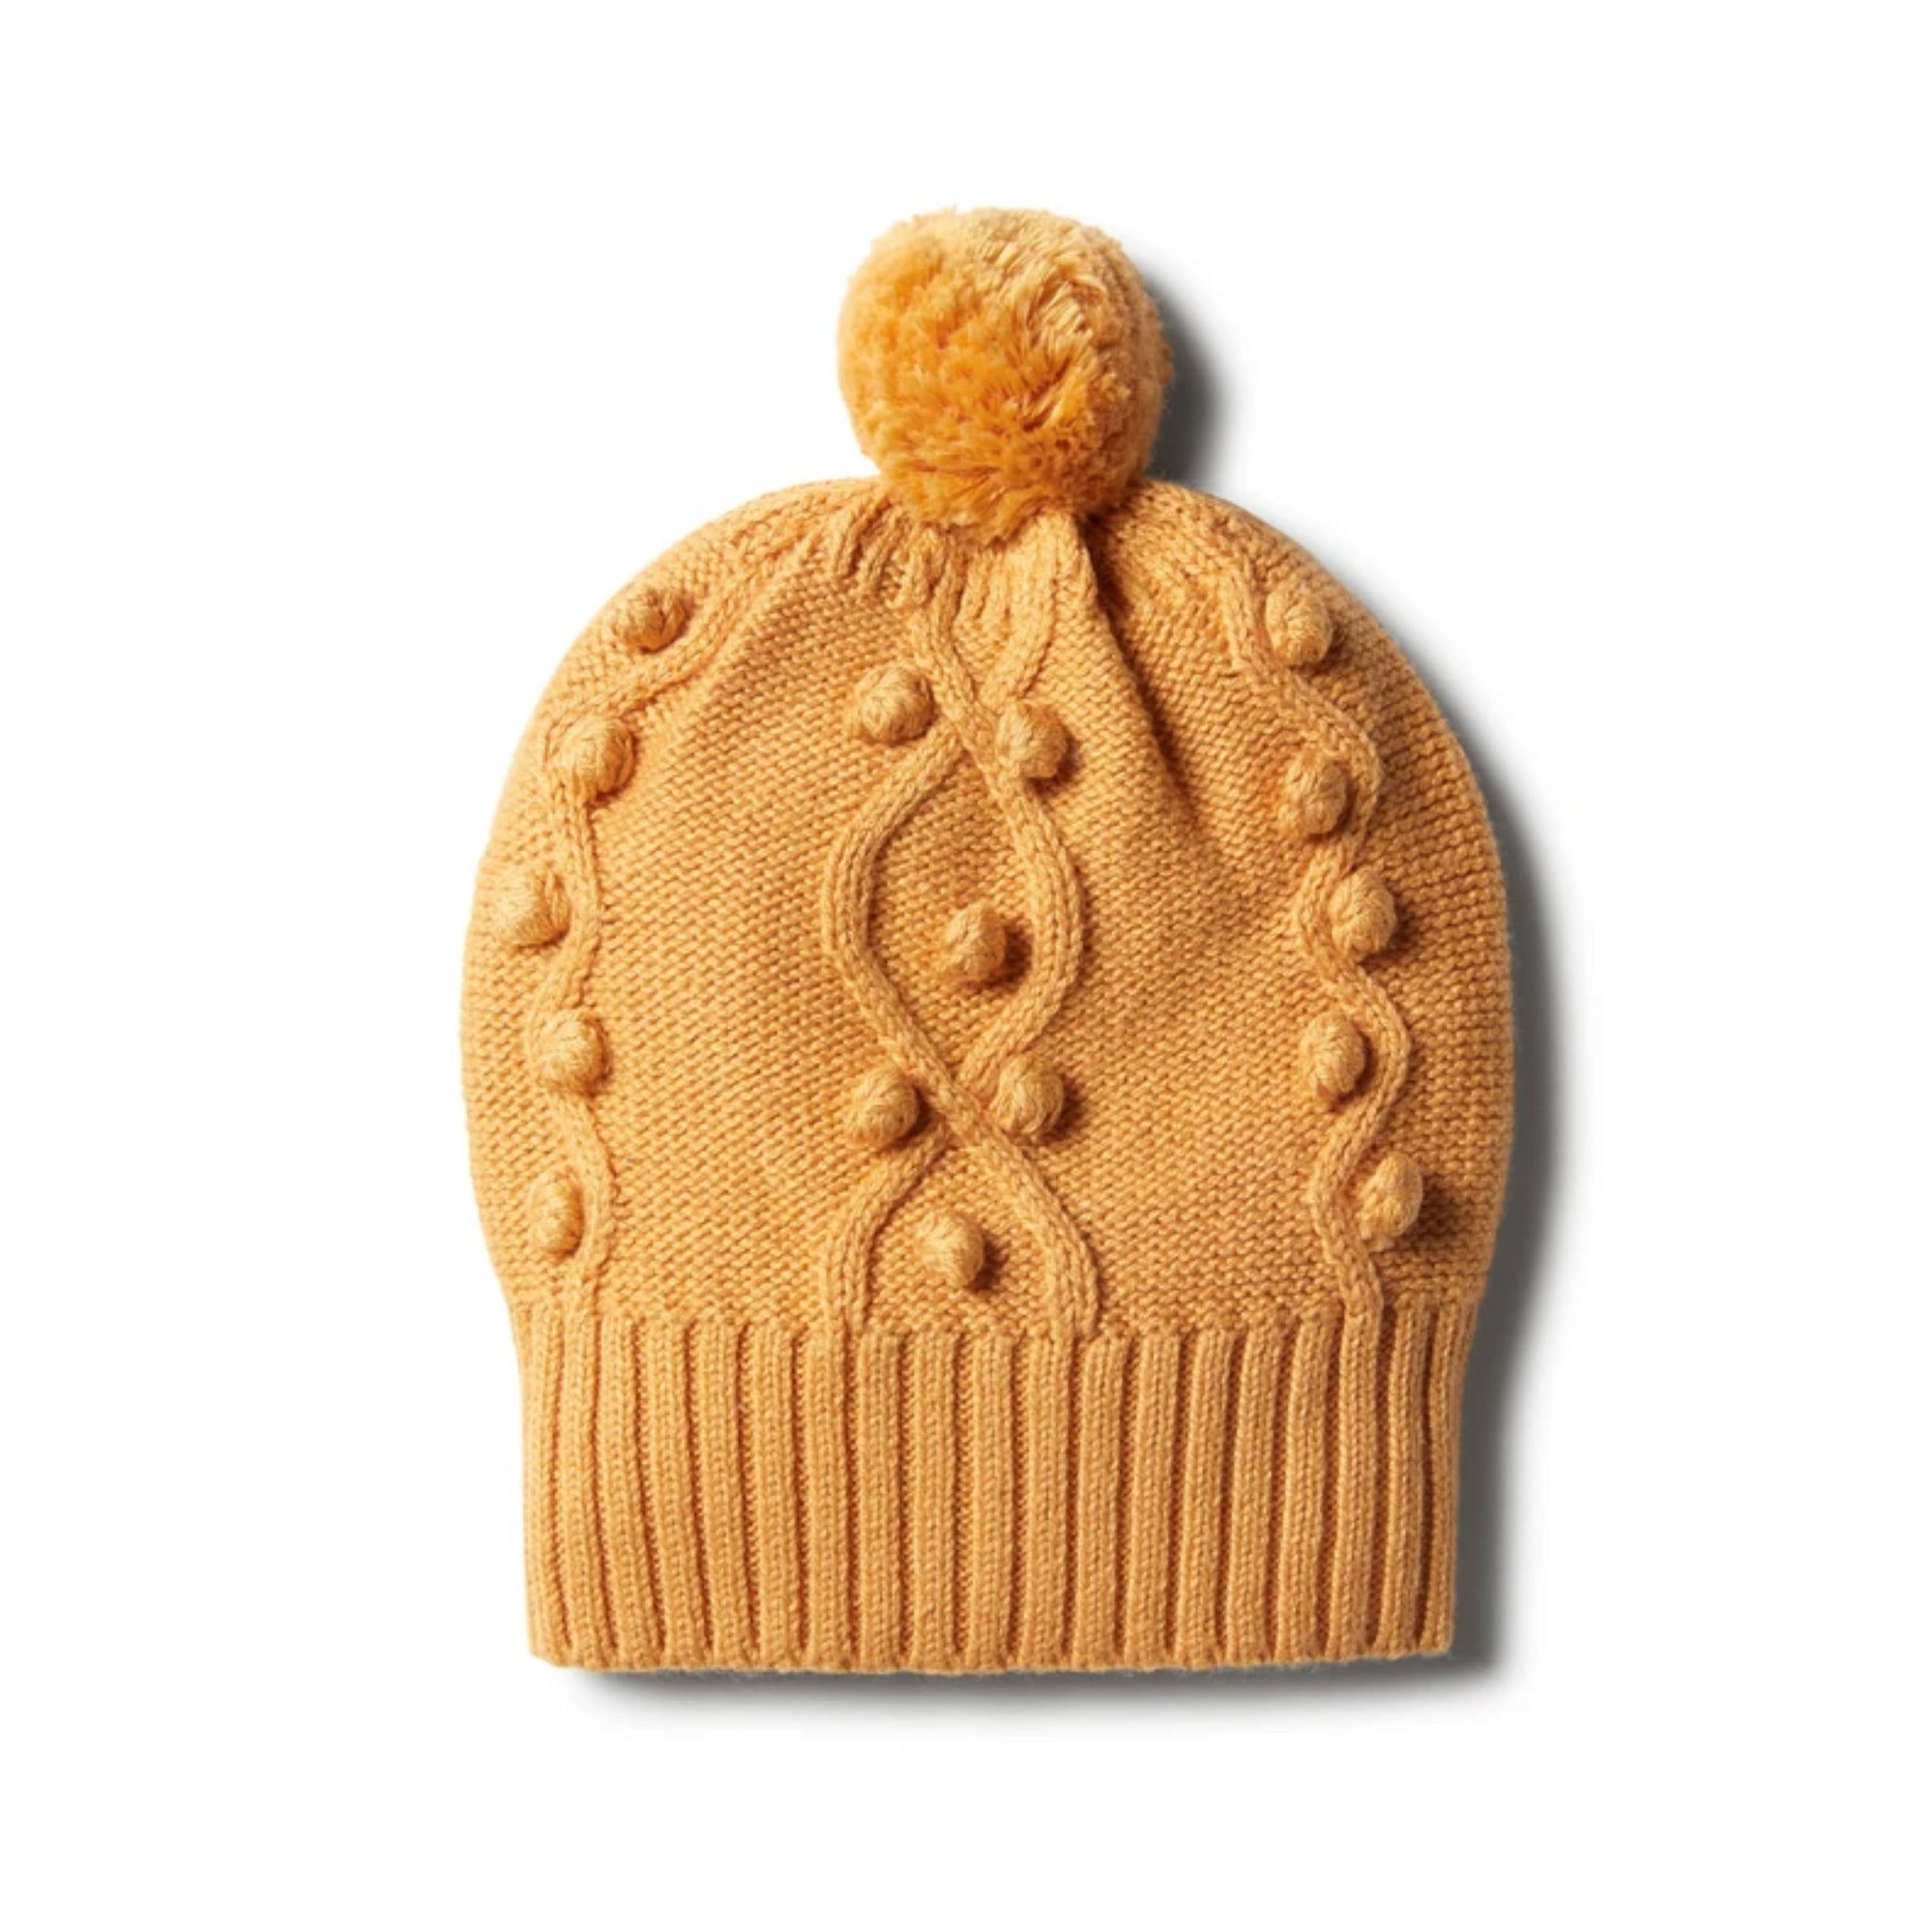 Golden Apricot Knitted Hat with Baubles